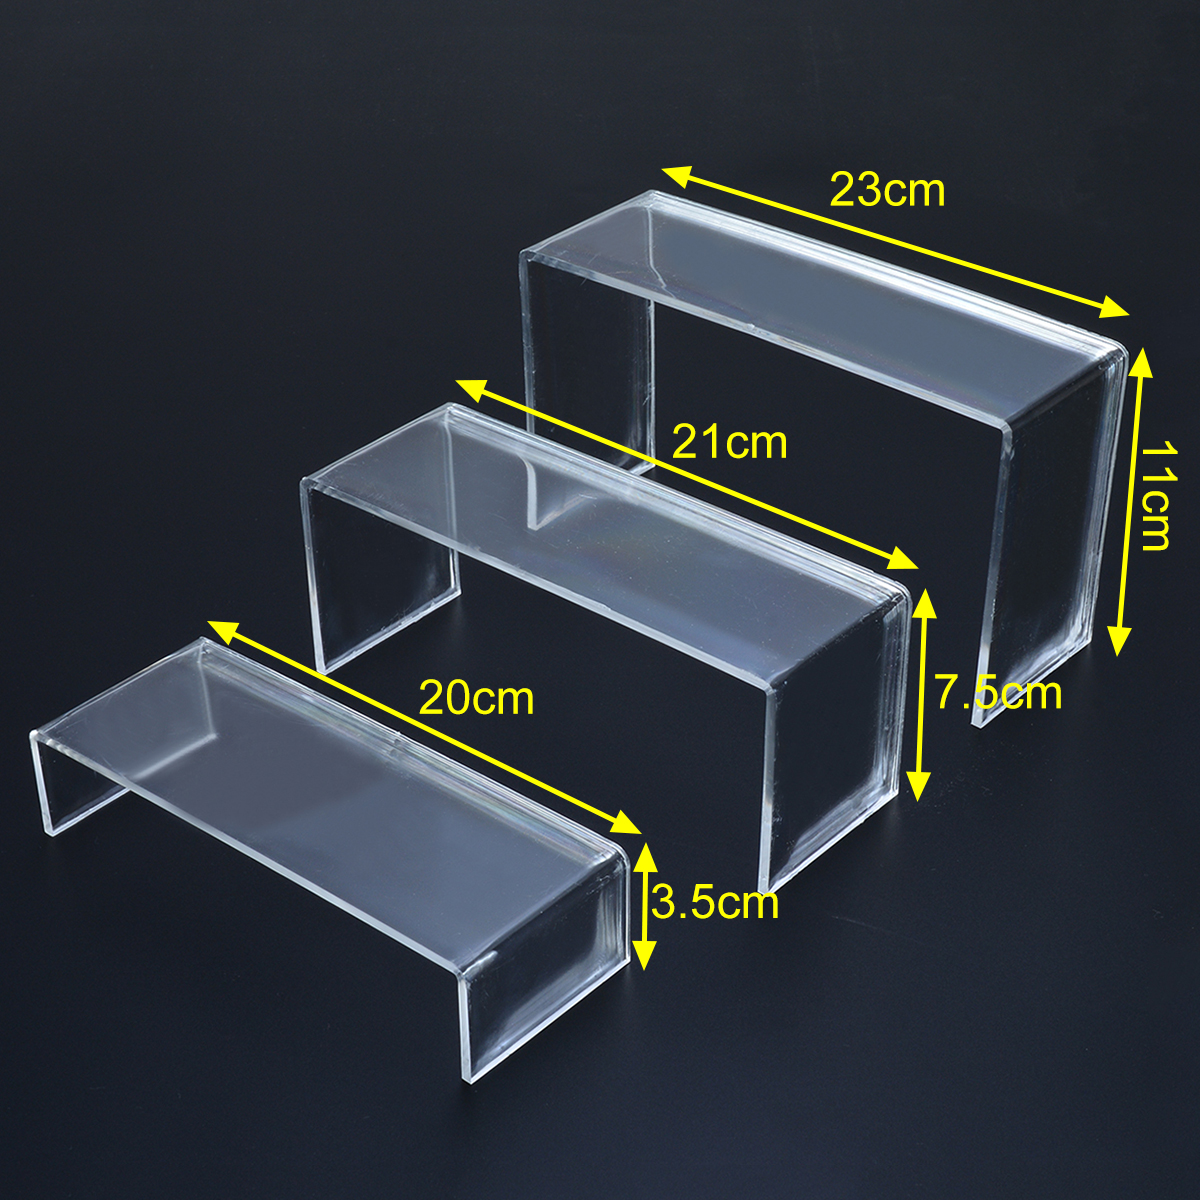 3Pcs Transparent Acrylic Display Stand Shoes Storage Rack Shoe Display Racks Cosmetics Display Holder Office Home Supplies